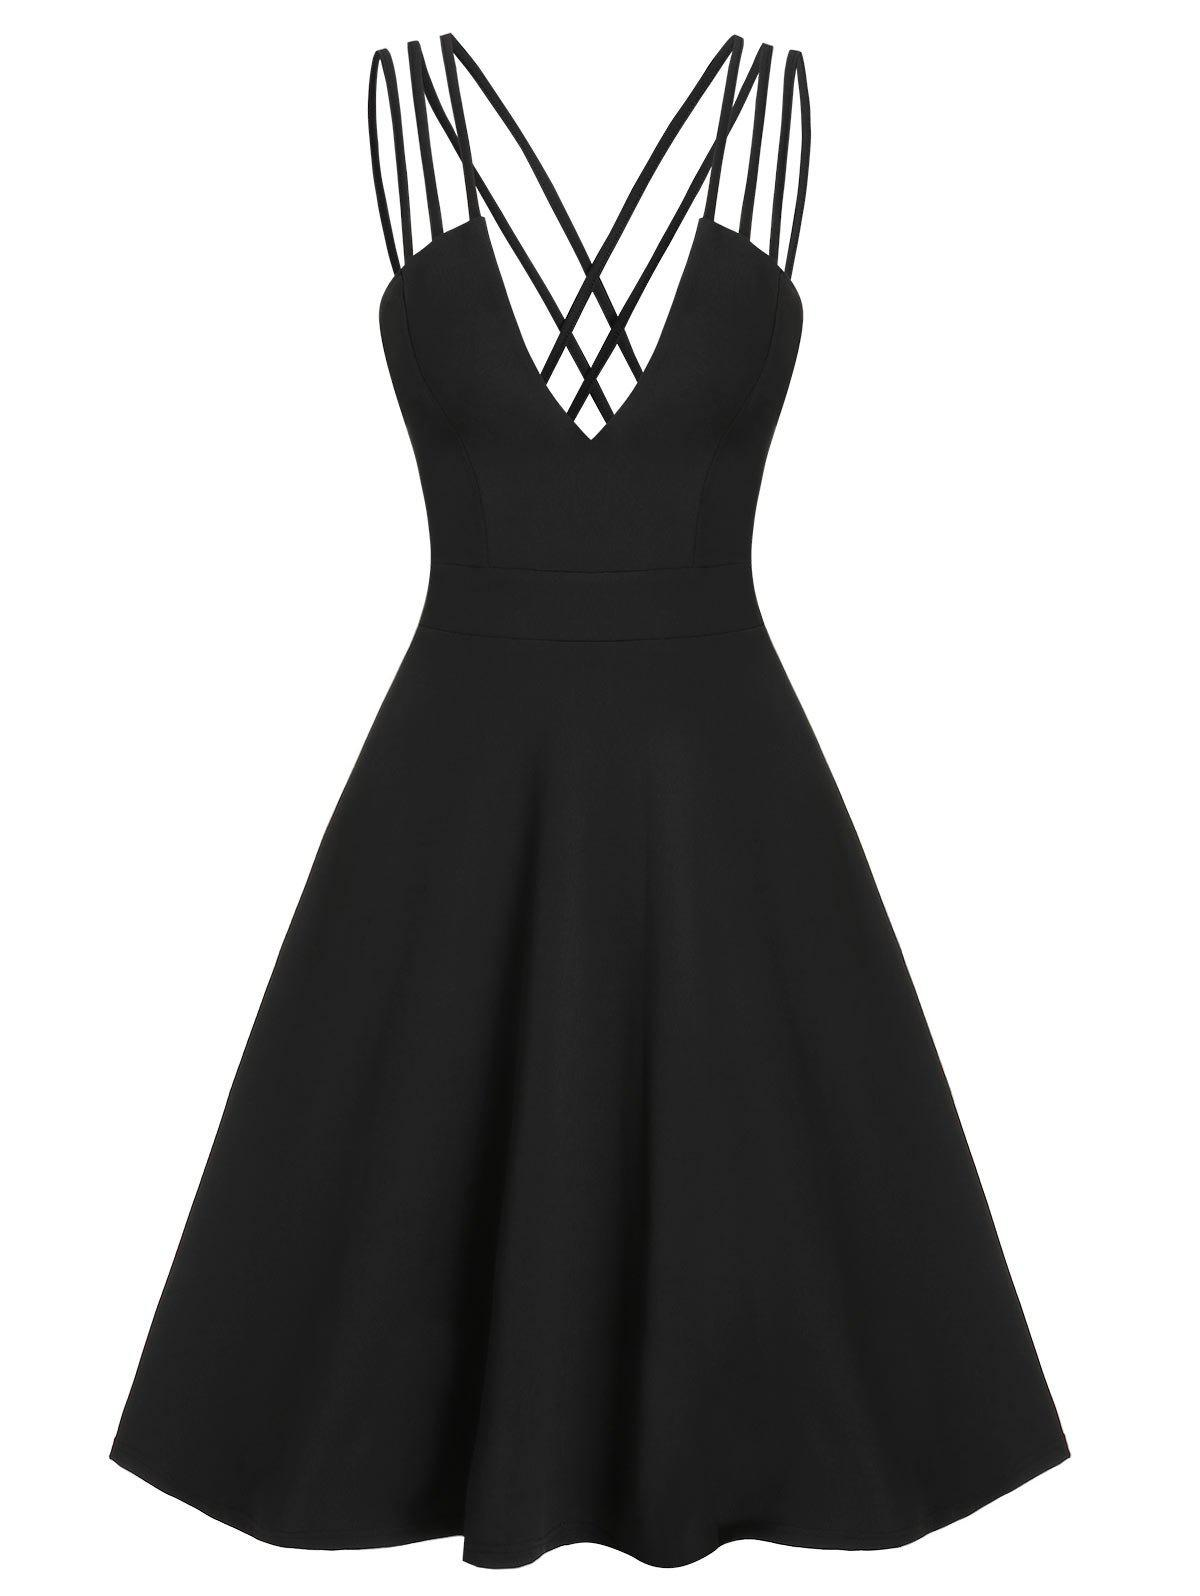 Online Fit And Flare Low Cut Criss Cross Straps Dress